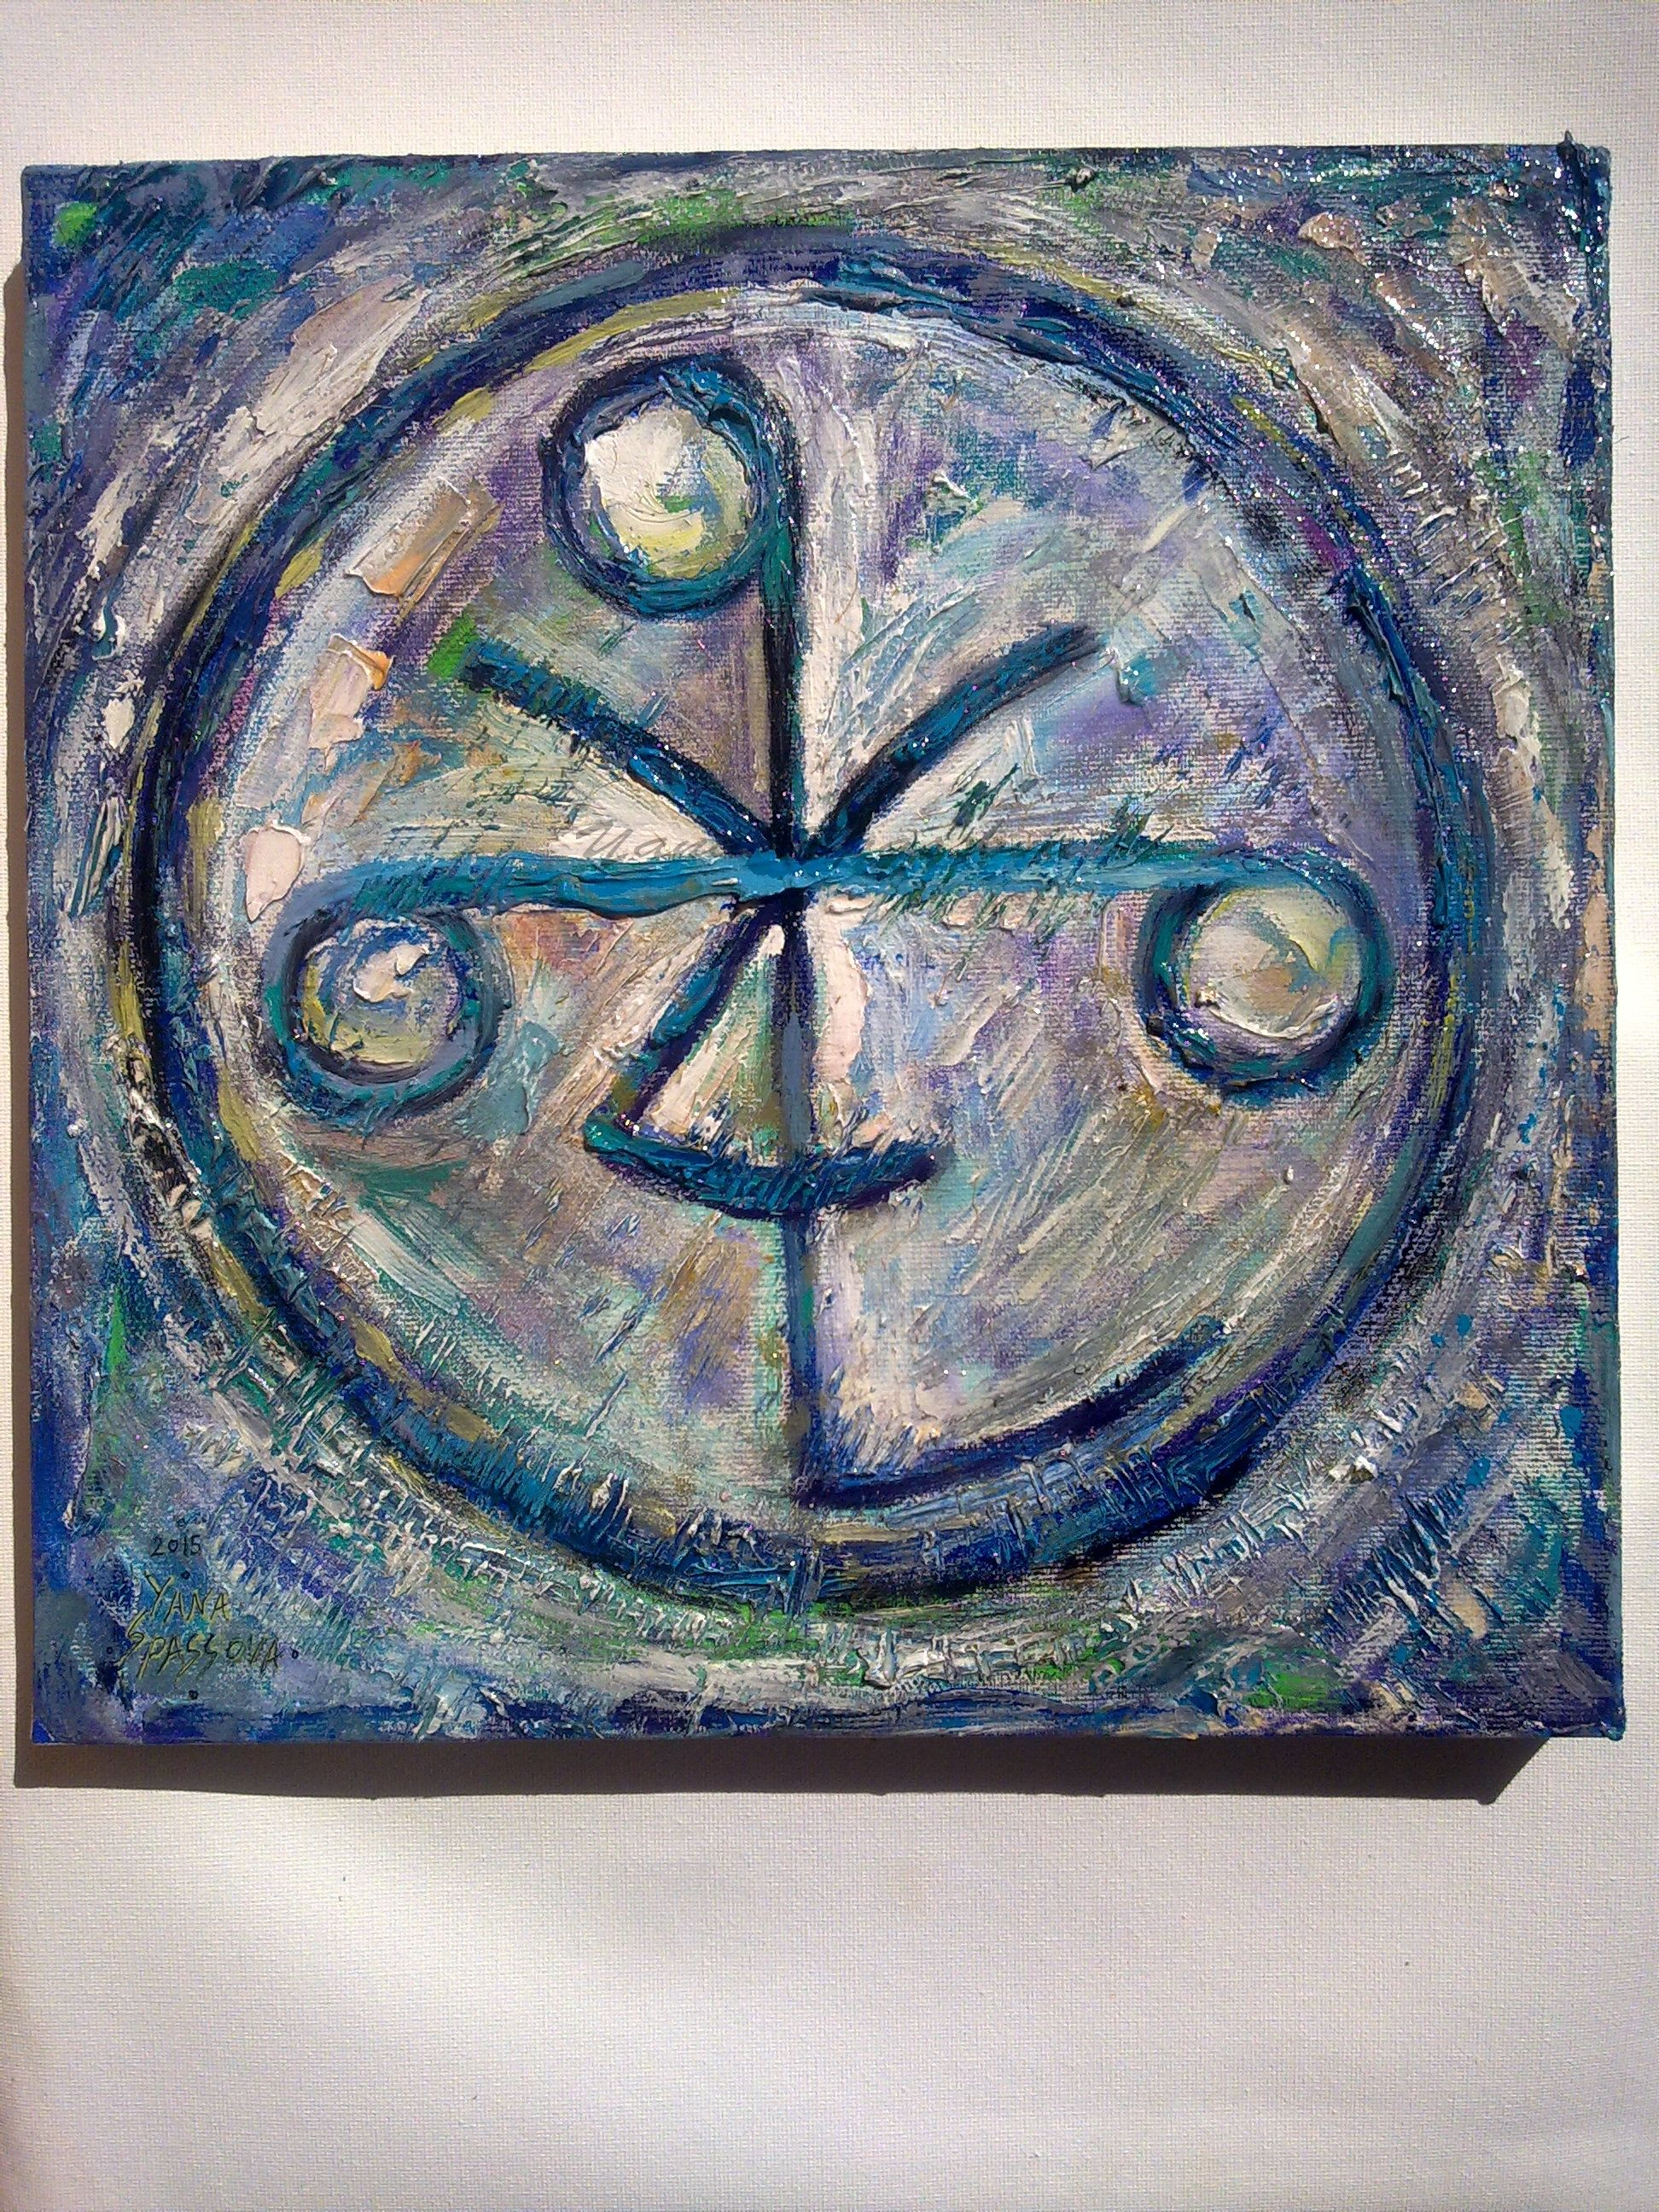 Old bulgarian symbol for nature and spirit equanimity orenda is old bulgarian symbol for nature and spirit equanimity orenda is knowledge time law biocorpaavc Image collections